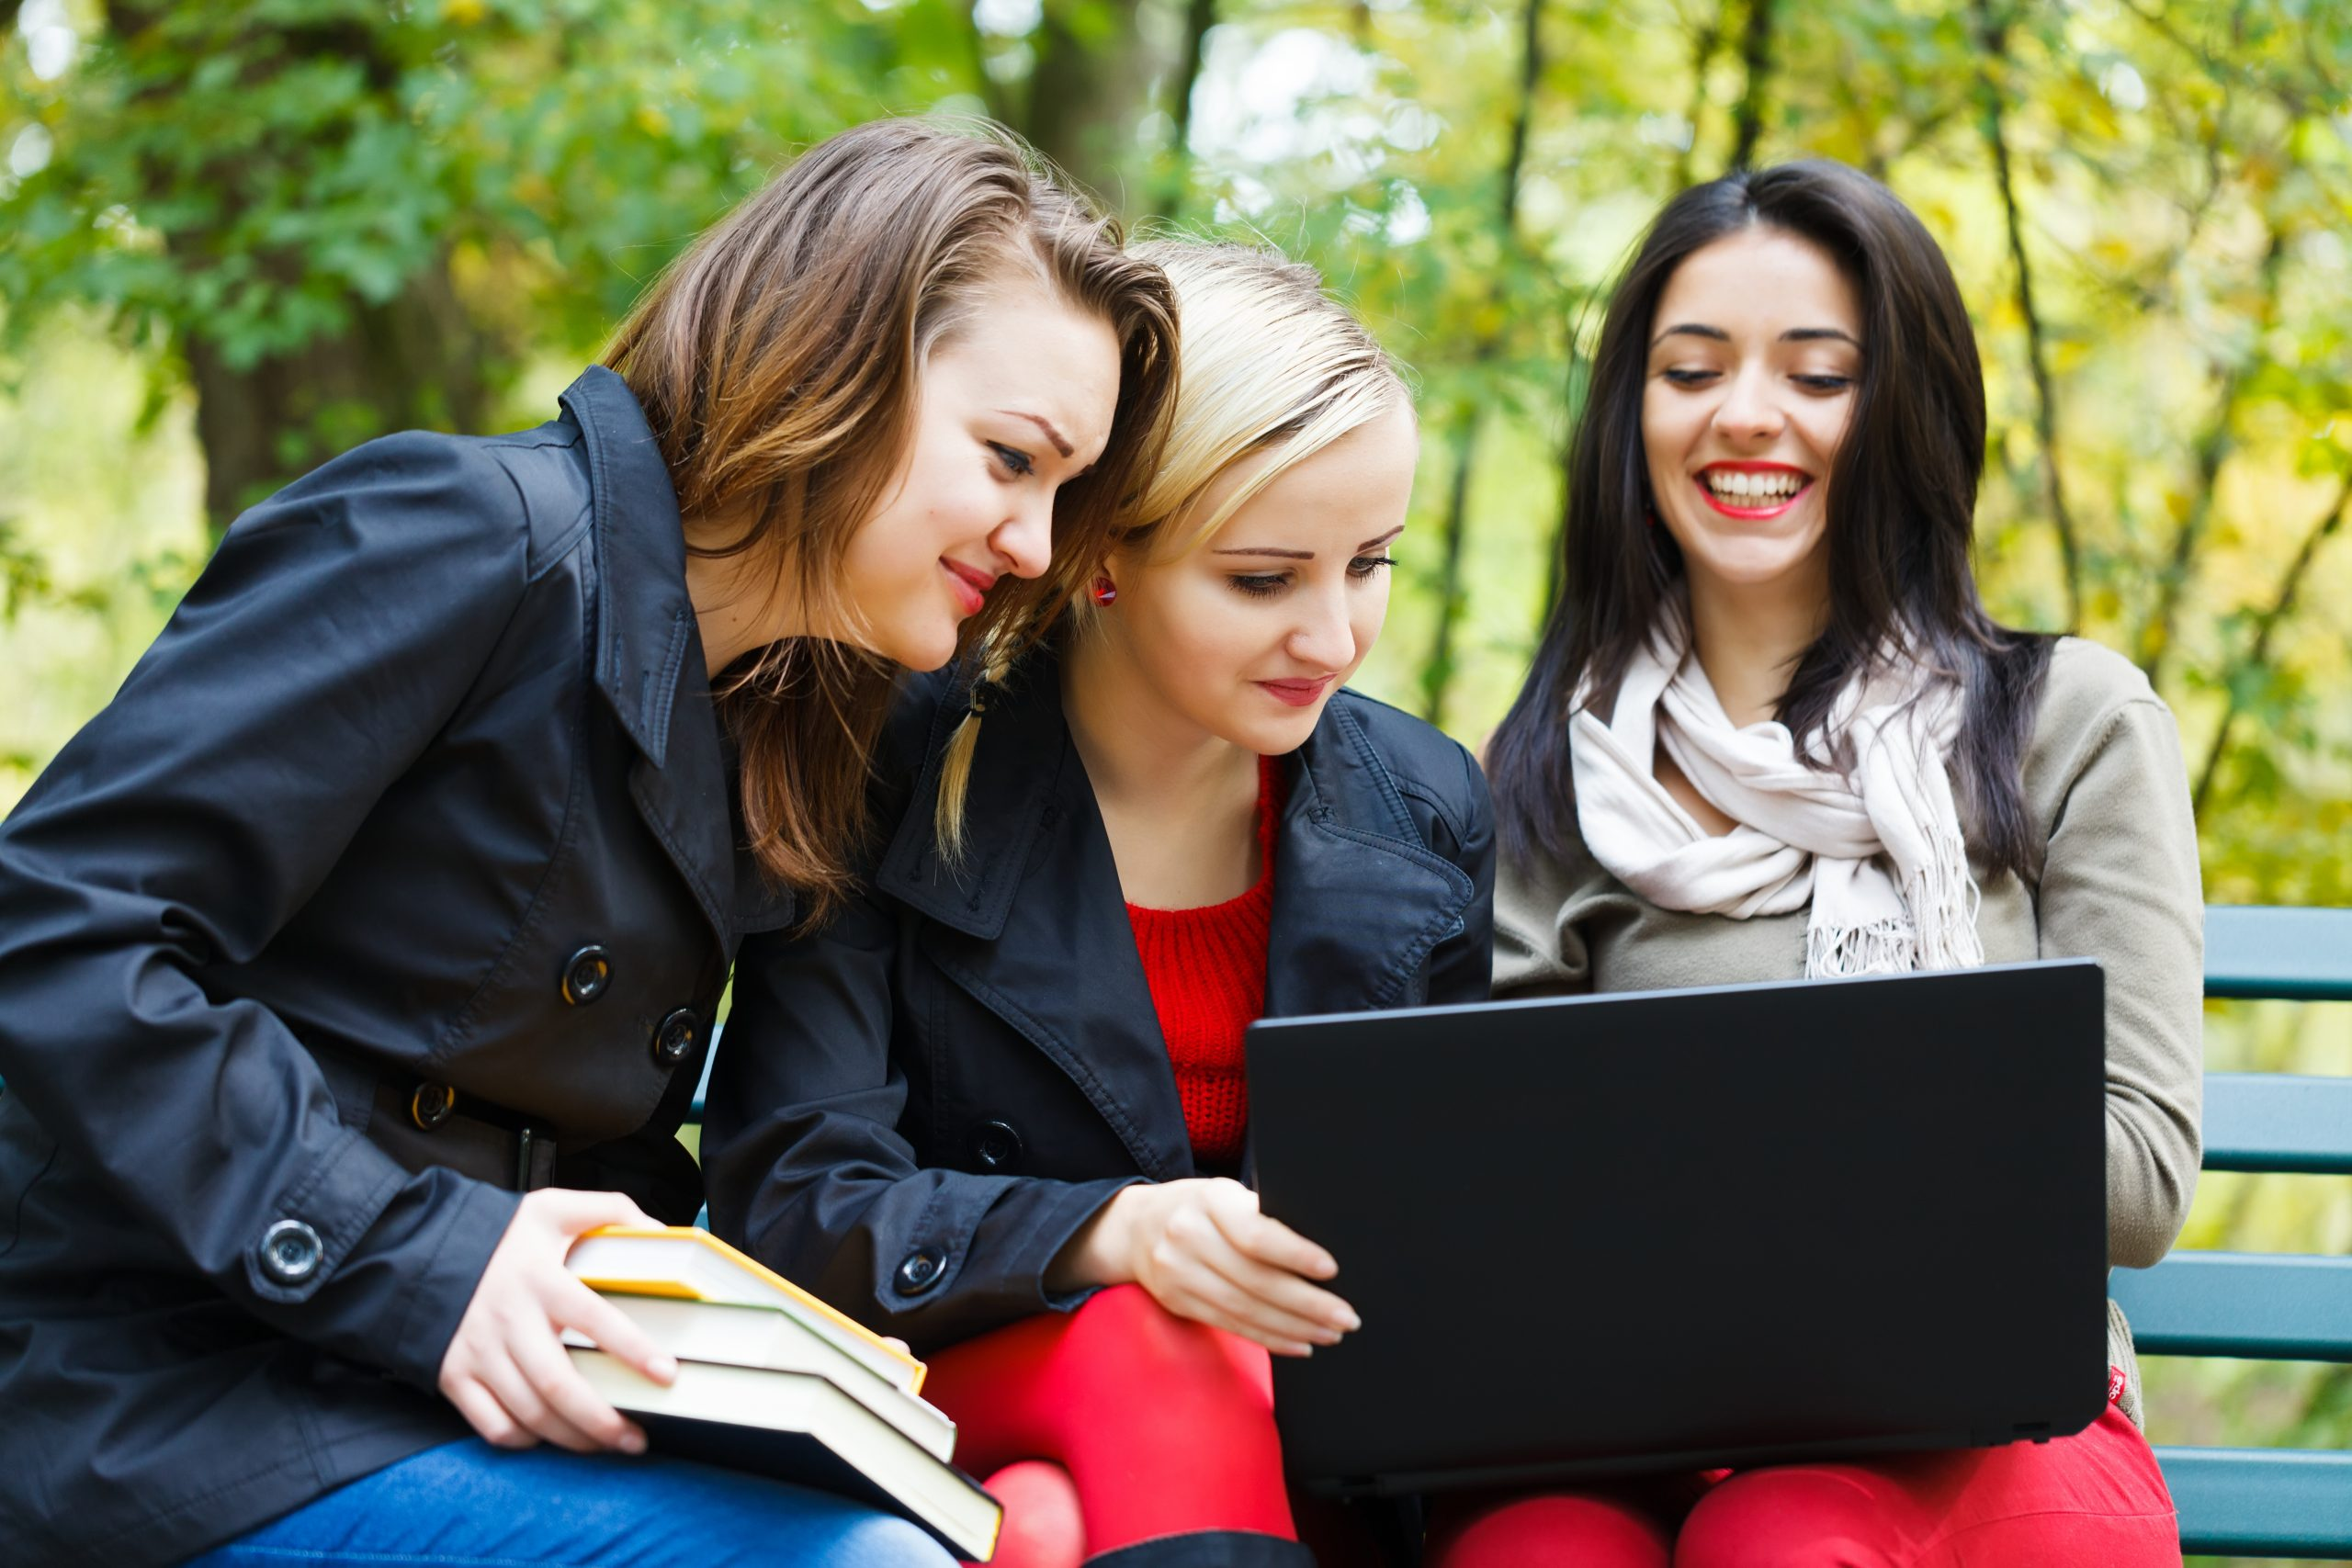 Beautiful girl students with laptops outdoors in the university campus.